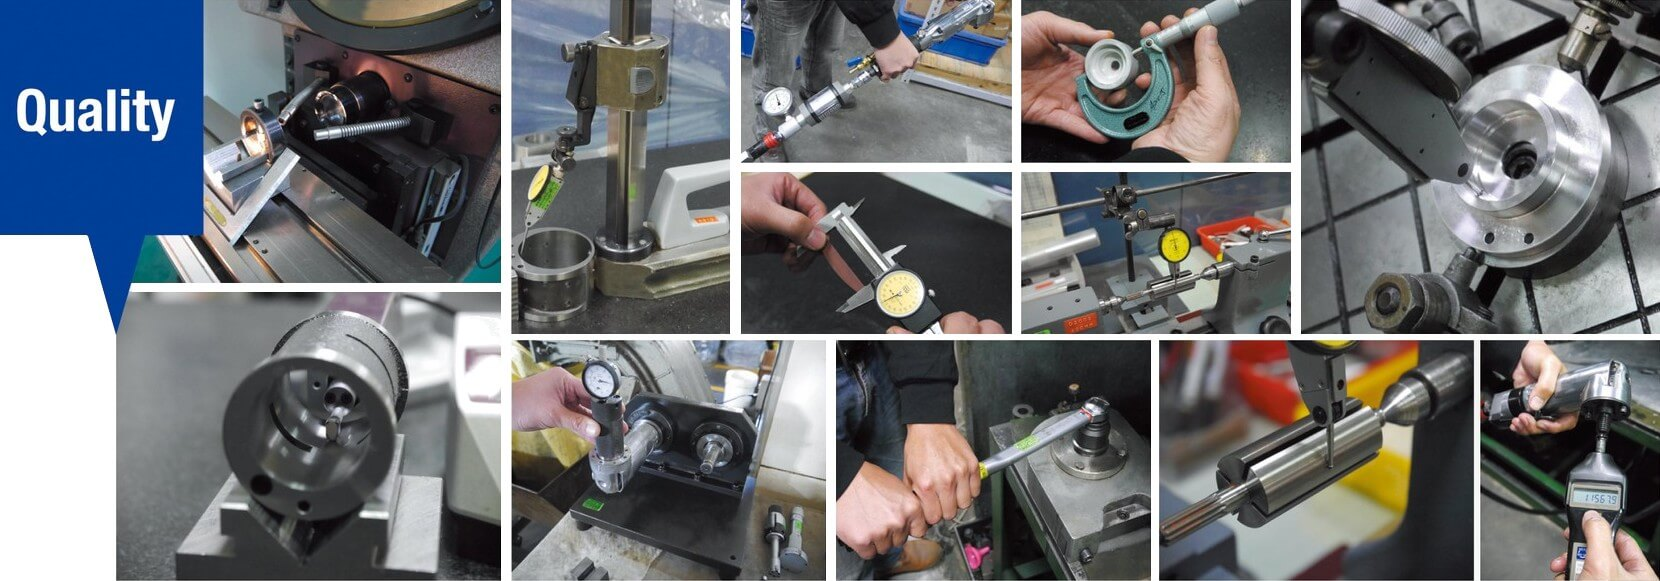 GISON - Air Tools Quality Inspection